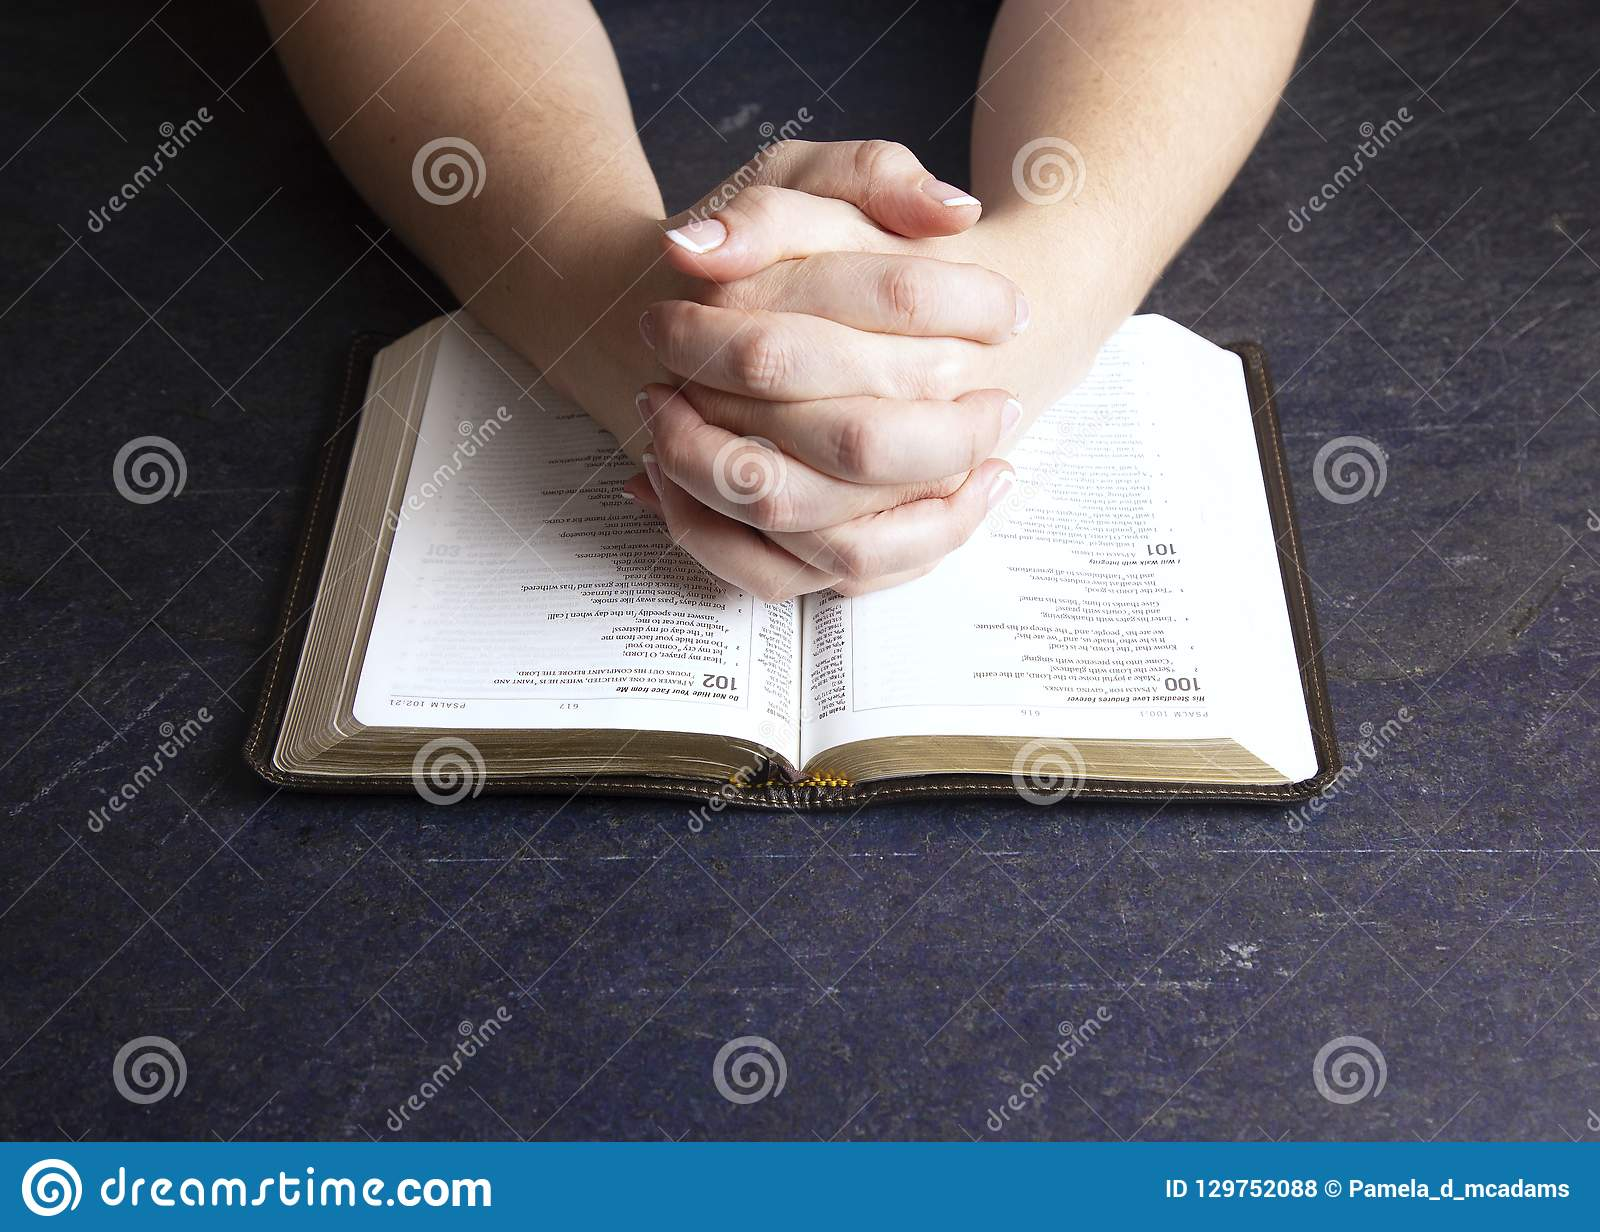 Woman Praying With Her Hands Clasped On A Bible Stock Photo